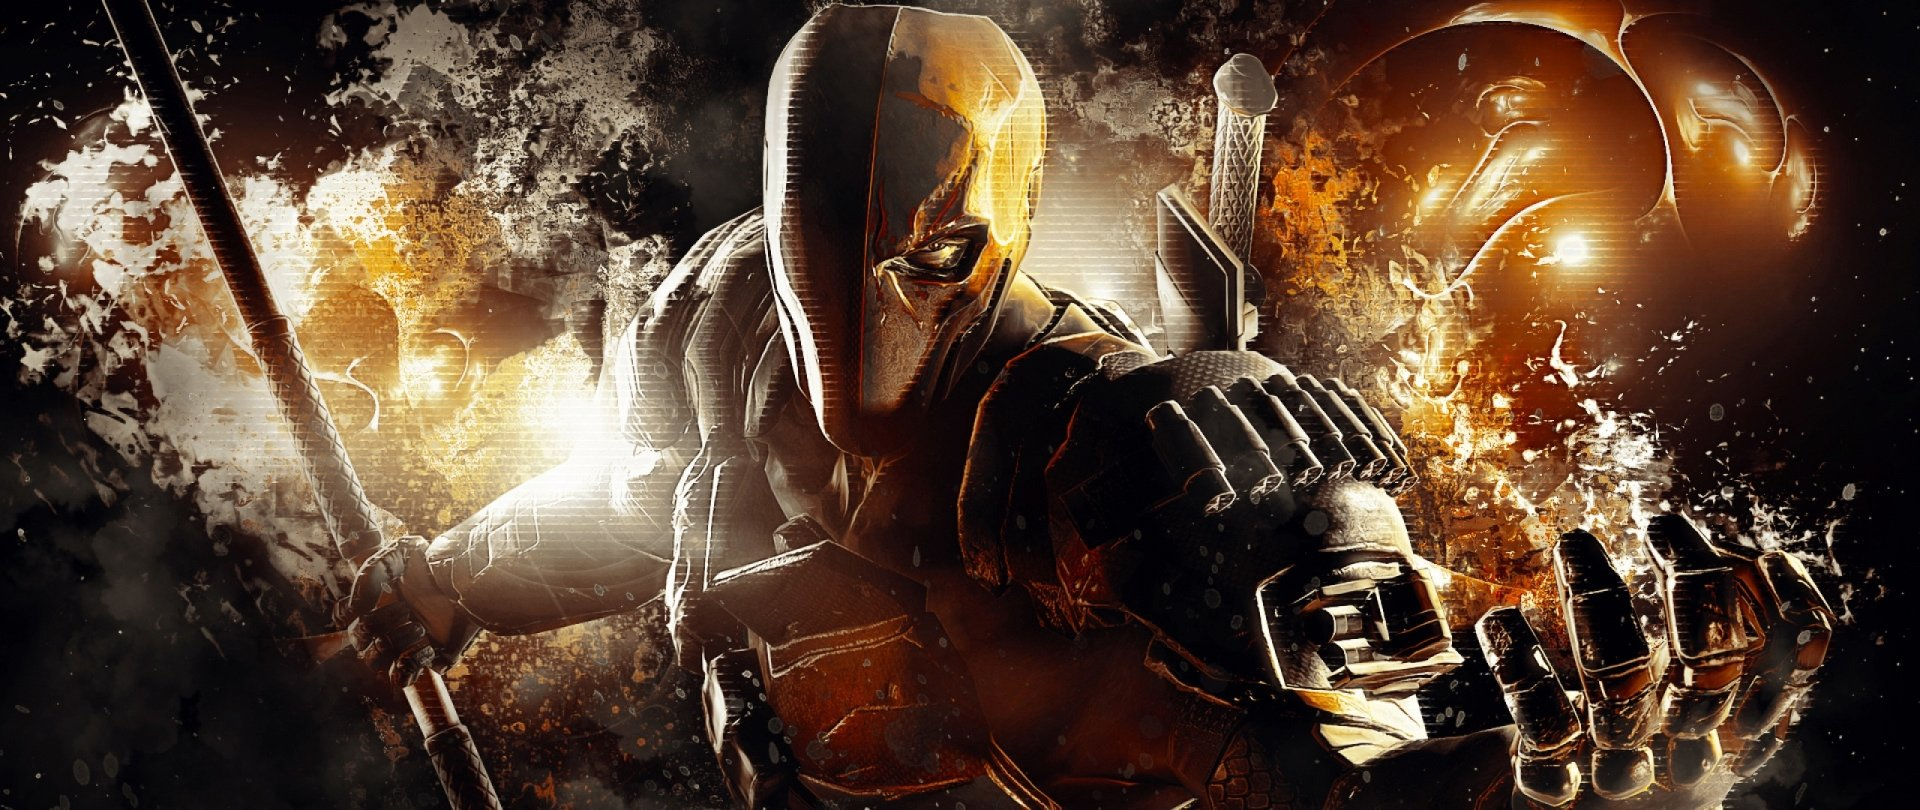 61 Deathstroke Hd Wallpapers Background Images Wallpaper Abyss